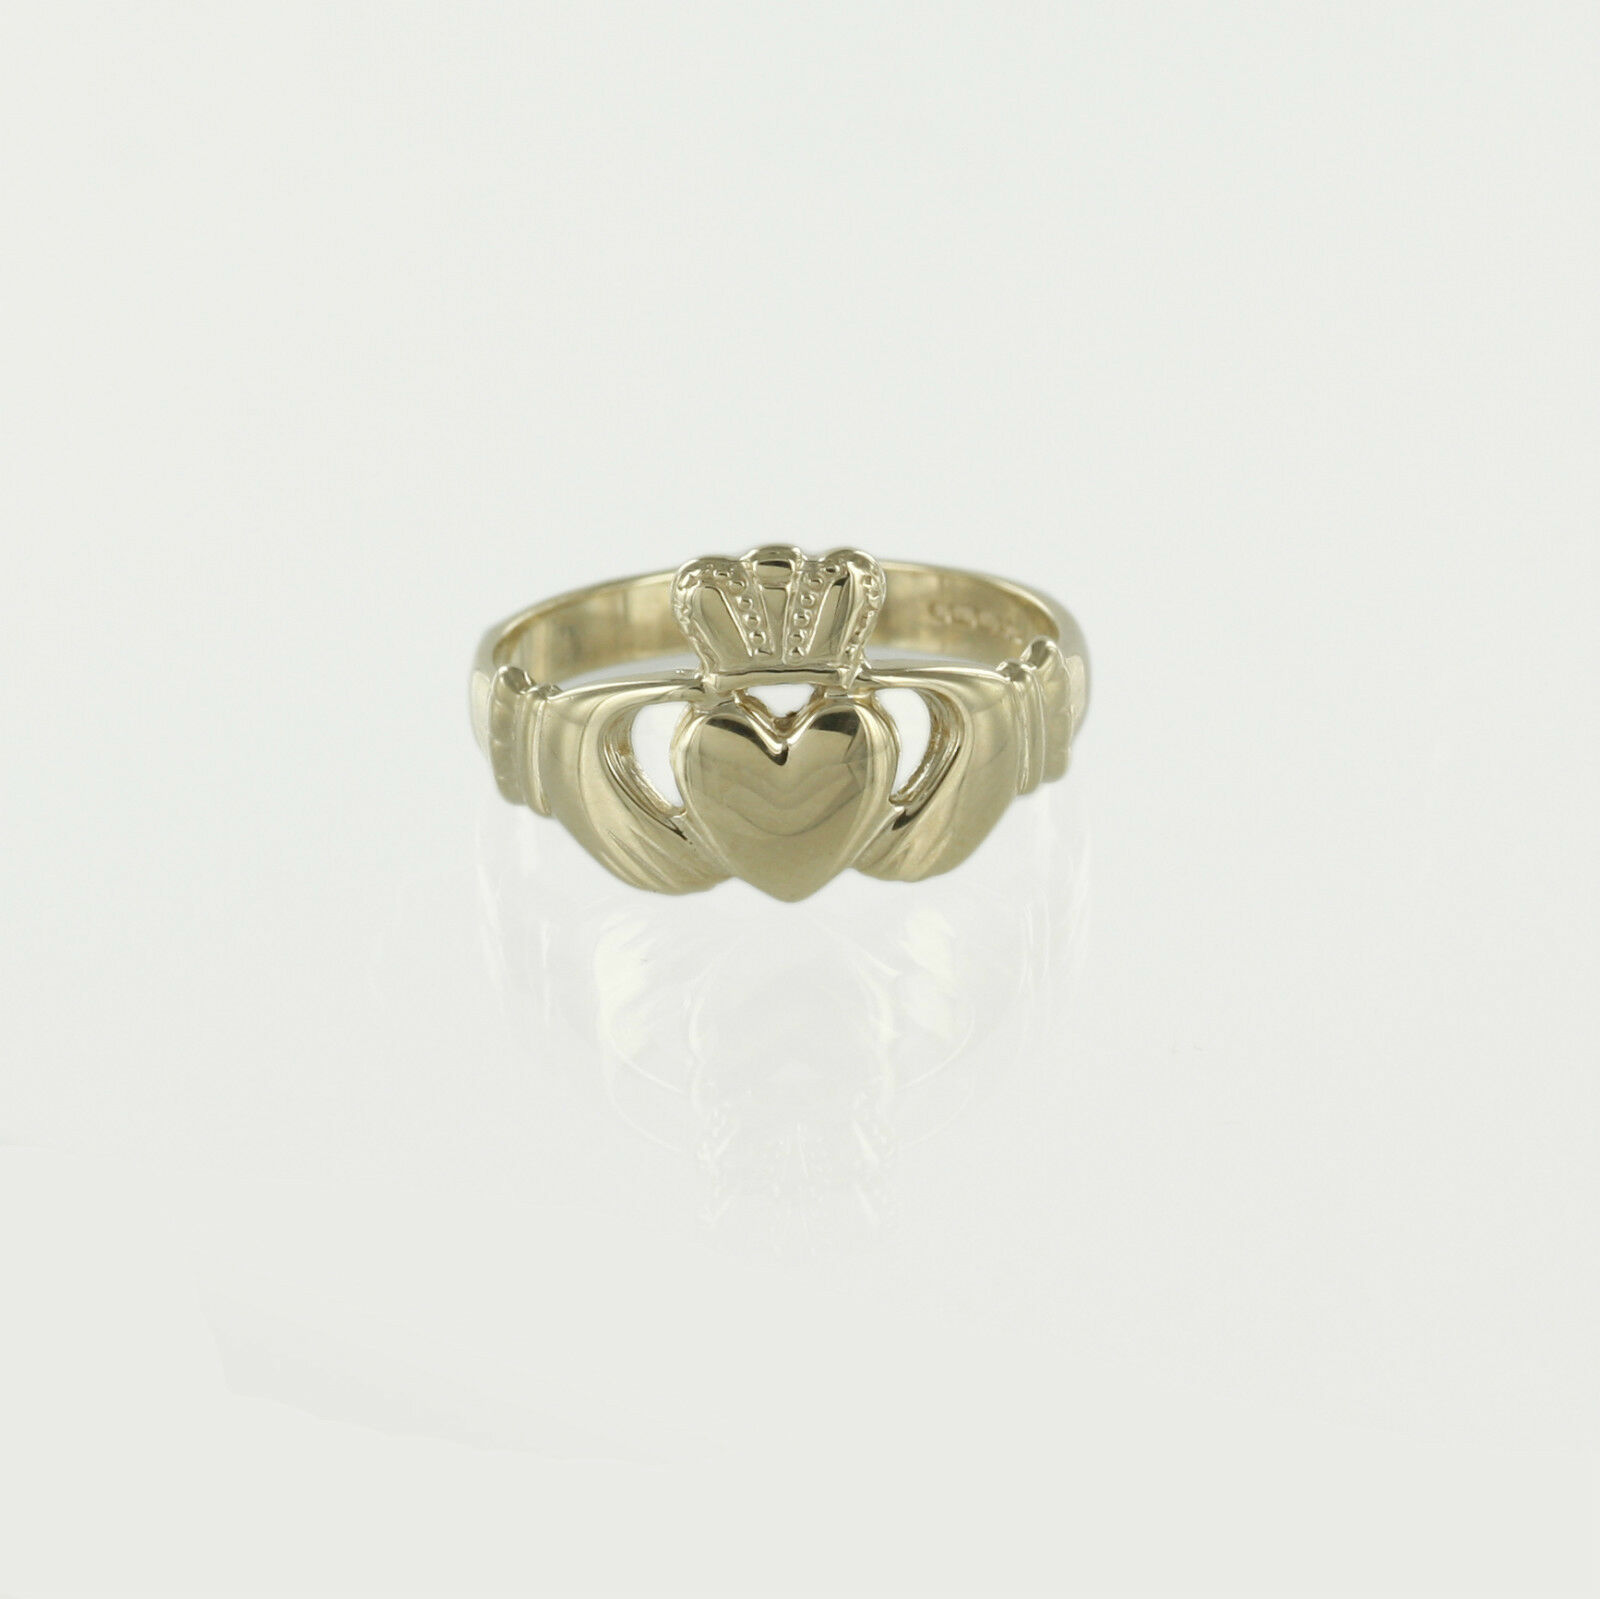 Hallmarked 9ct Yellow gold Mens Irish Claddagh Ring